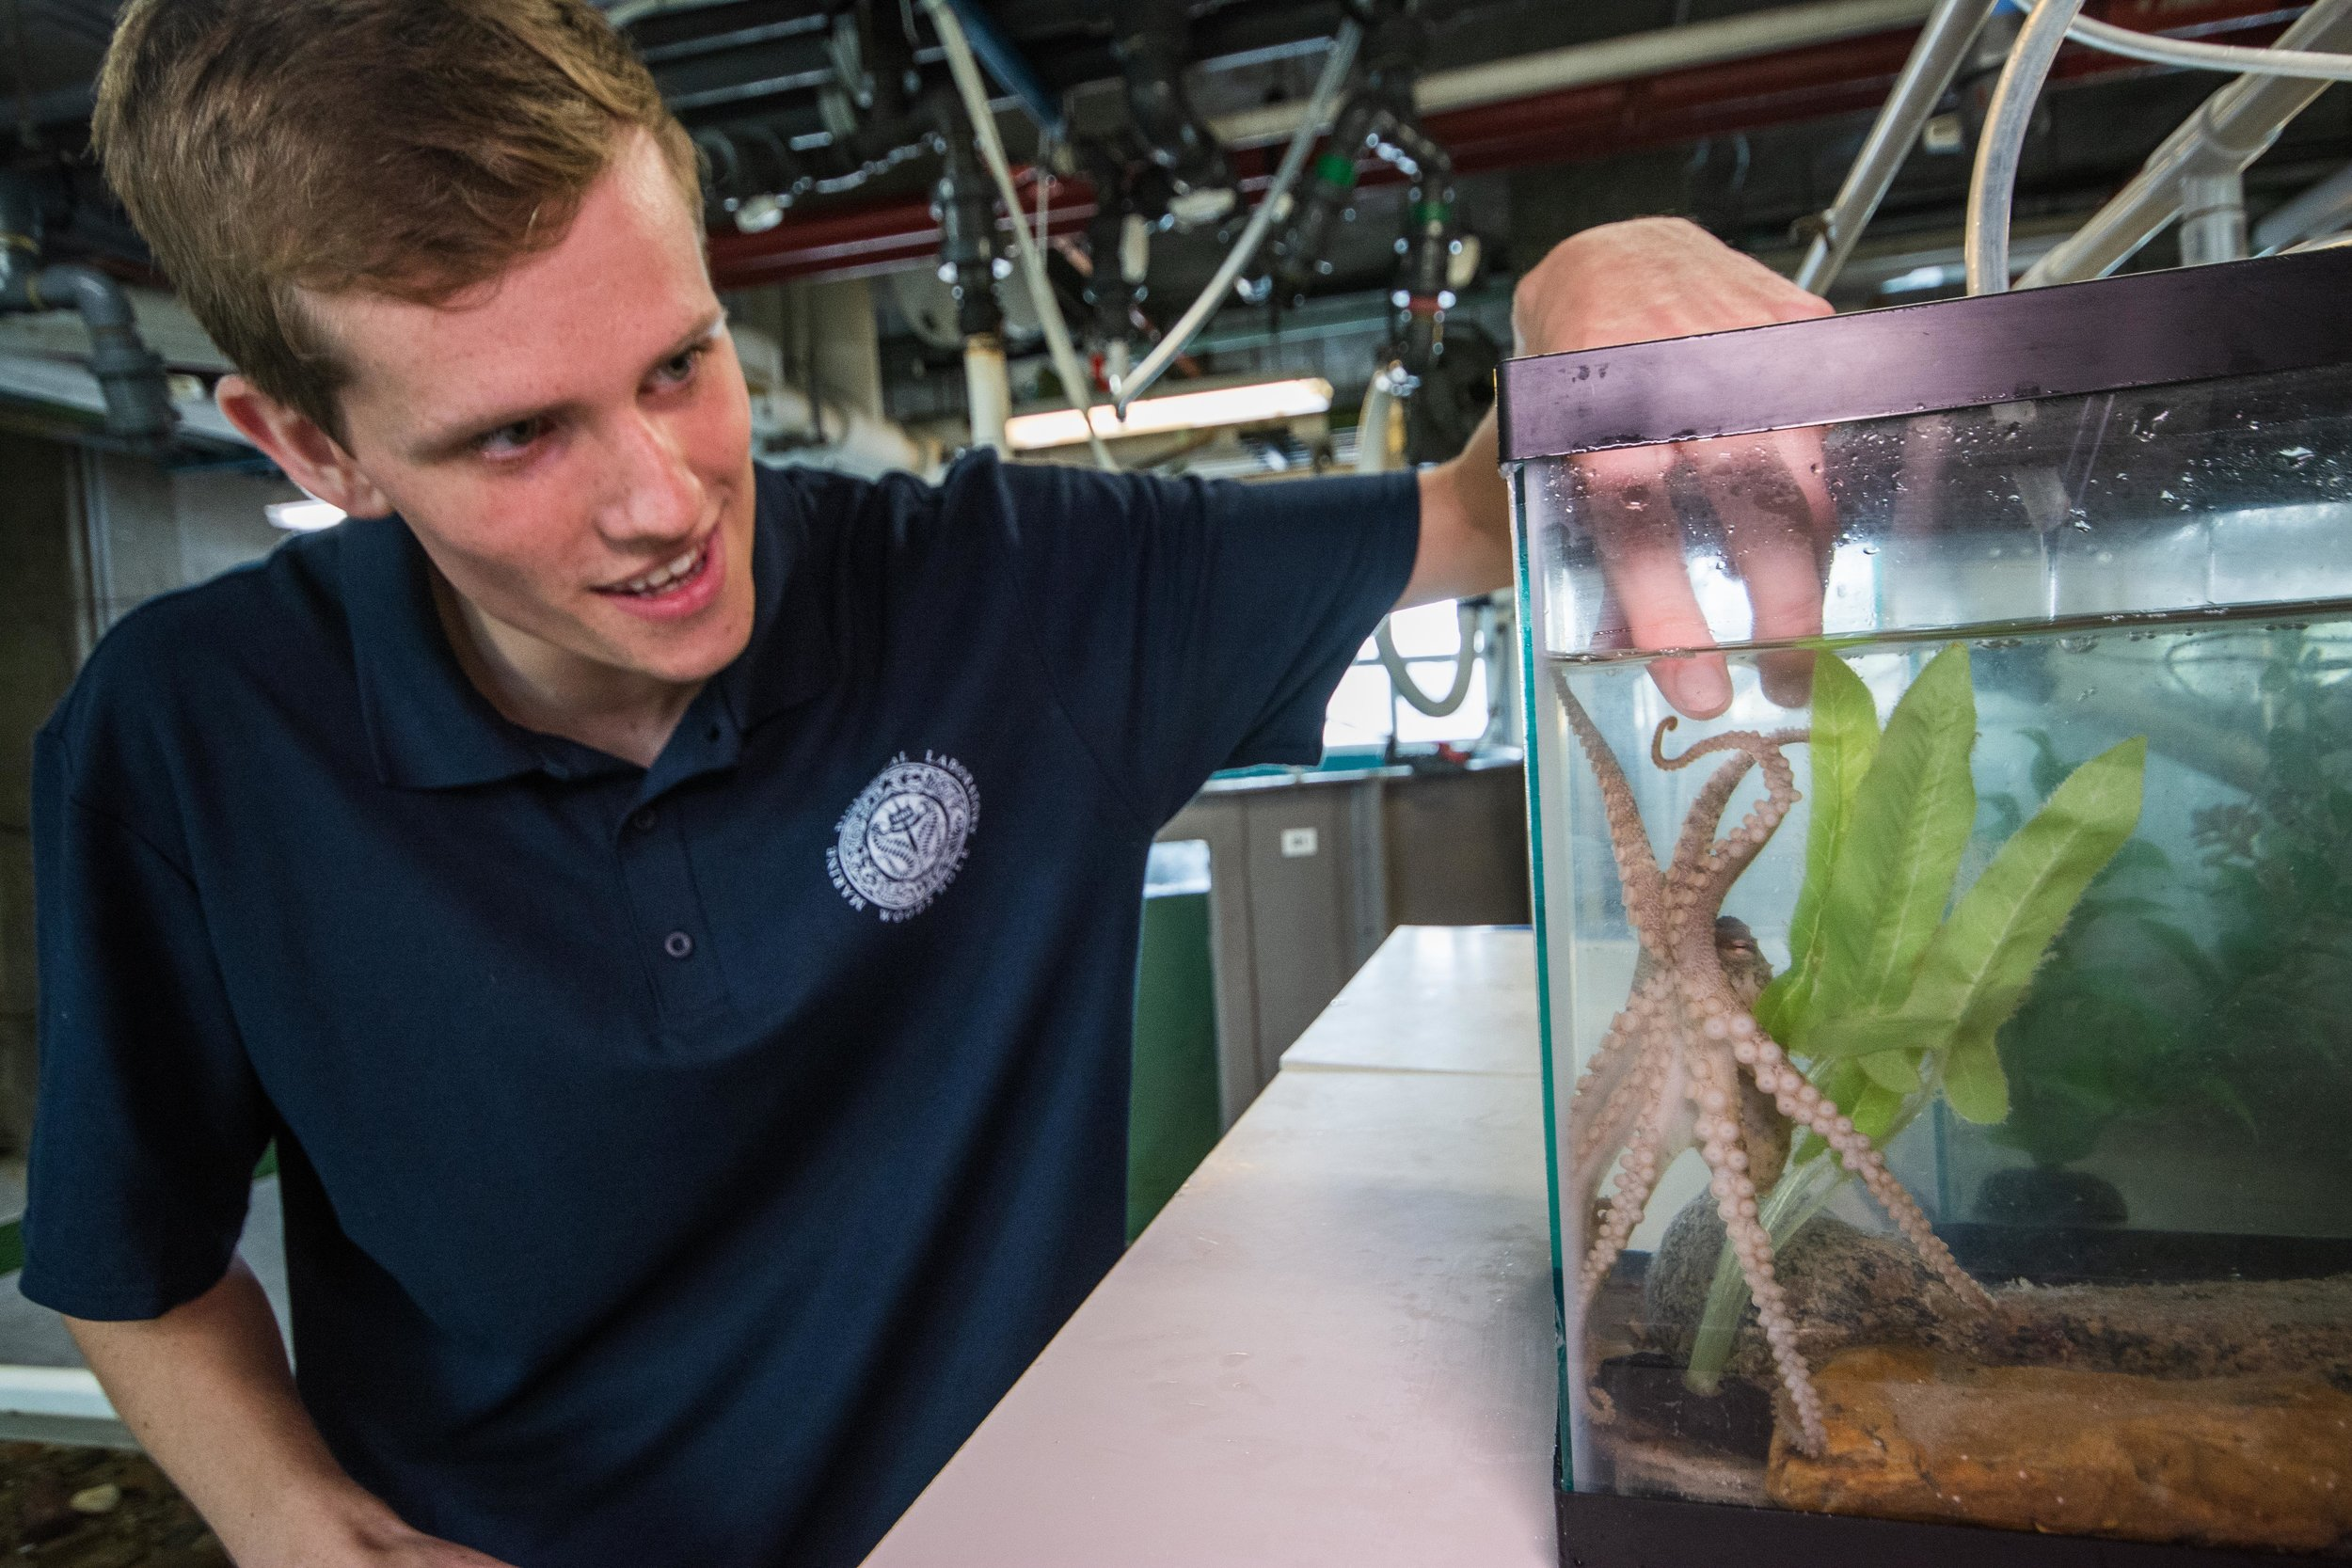 Matt Everett and one of the California Two-spot octopuses held in the Marine Biological Laboratory outreach tanks.